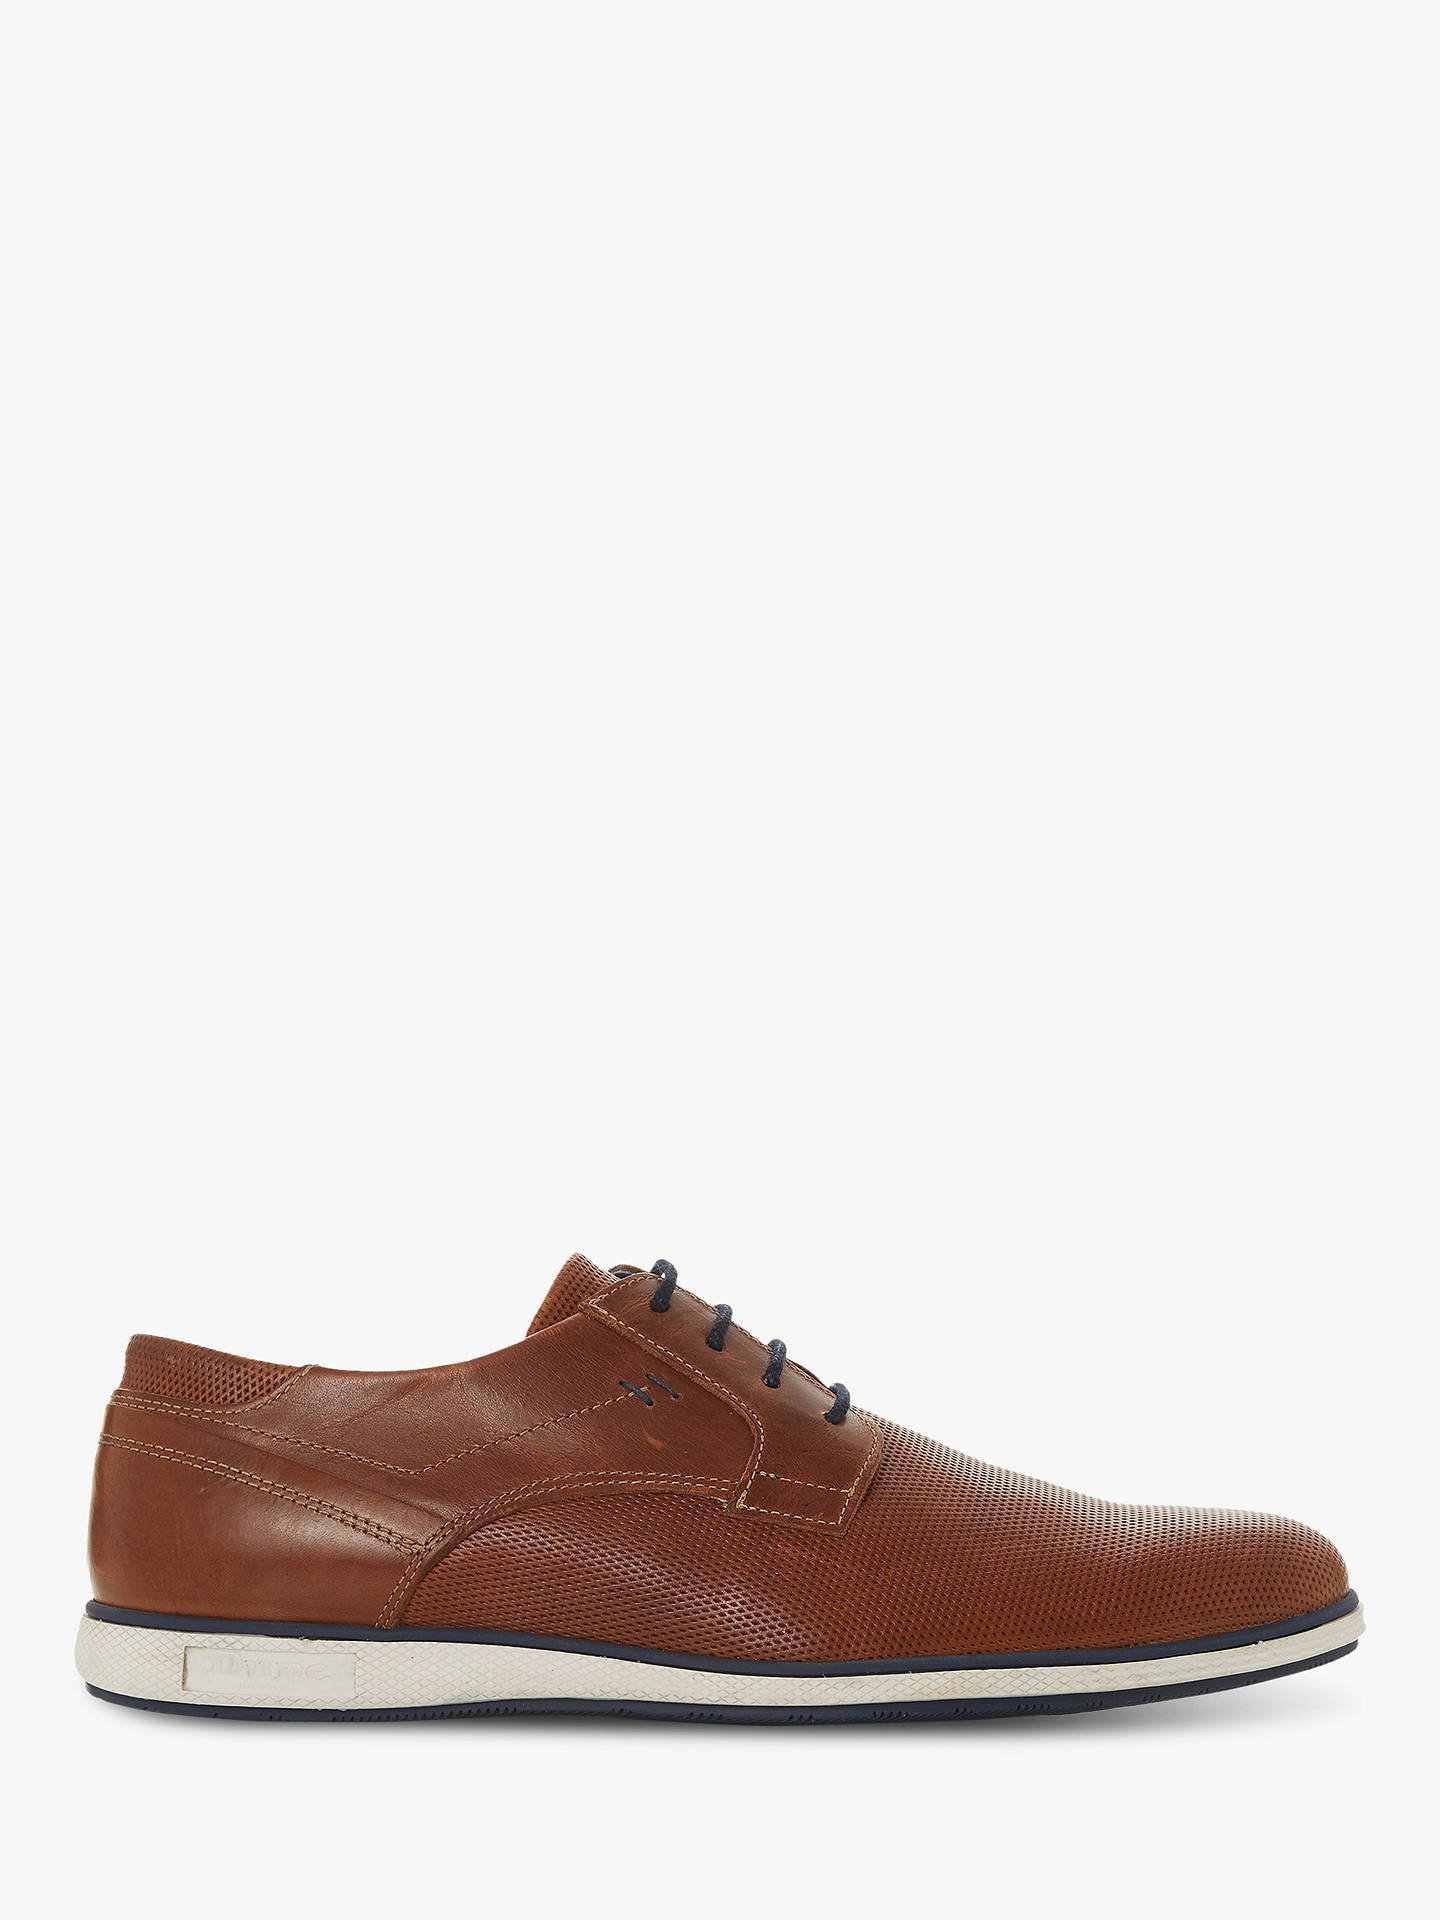 abf2f087c49 Dune Bamfield Leather Derby Shoes, Tan